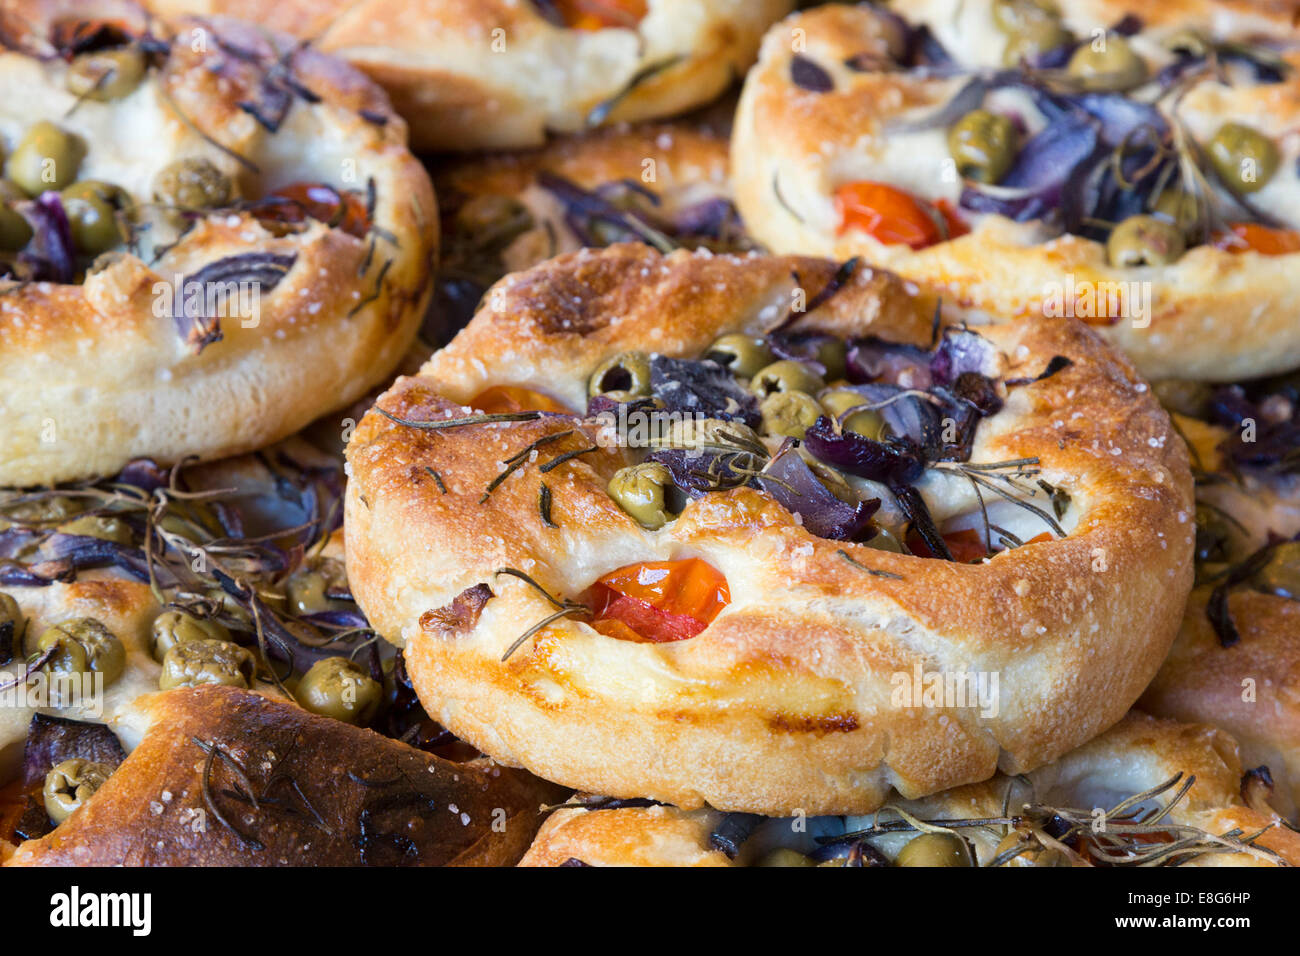 Focaccia, artisan bread, Italian flatbread with herbs, olives and tomatoes. - Stock Image